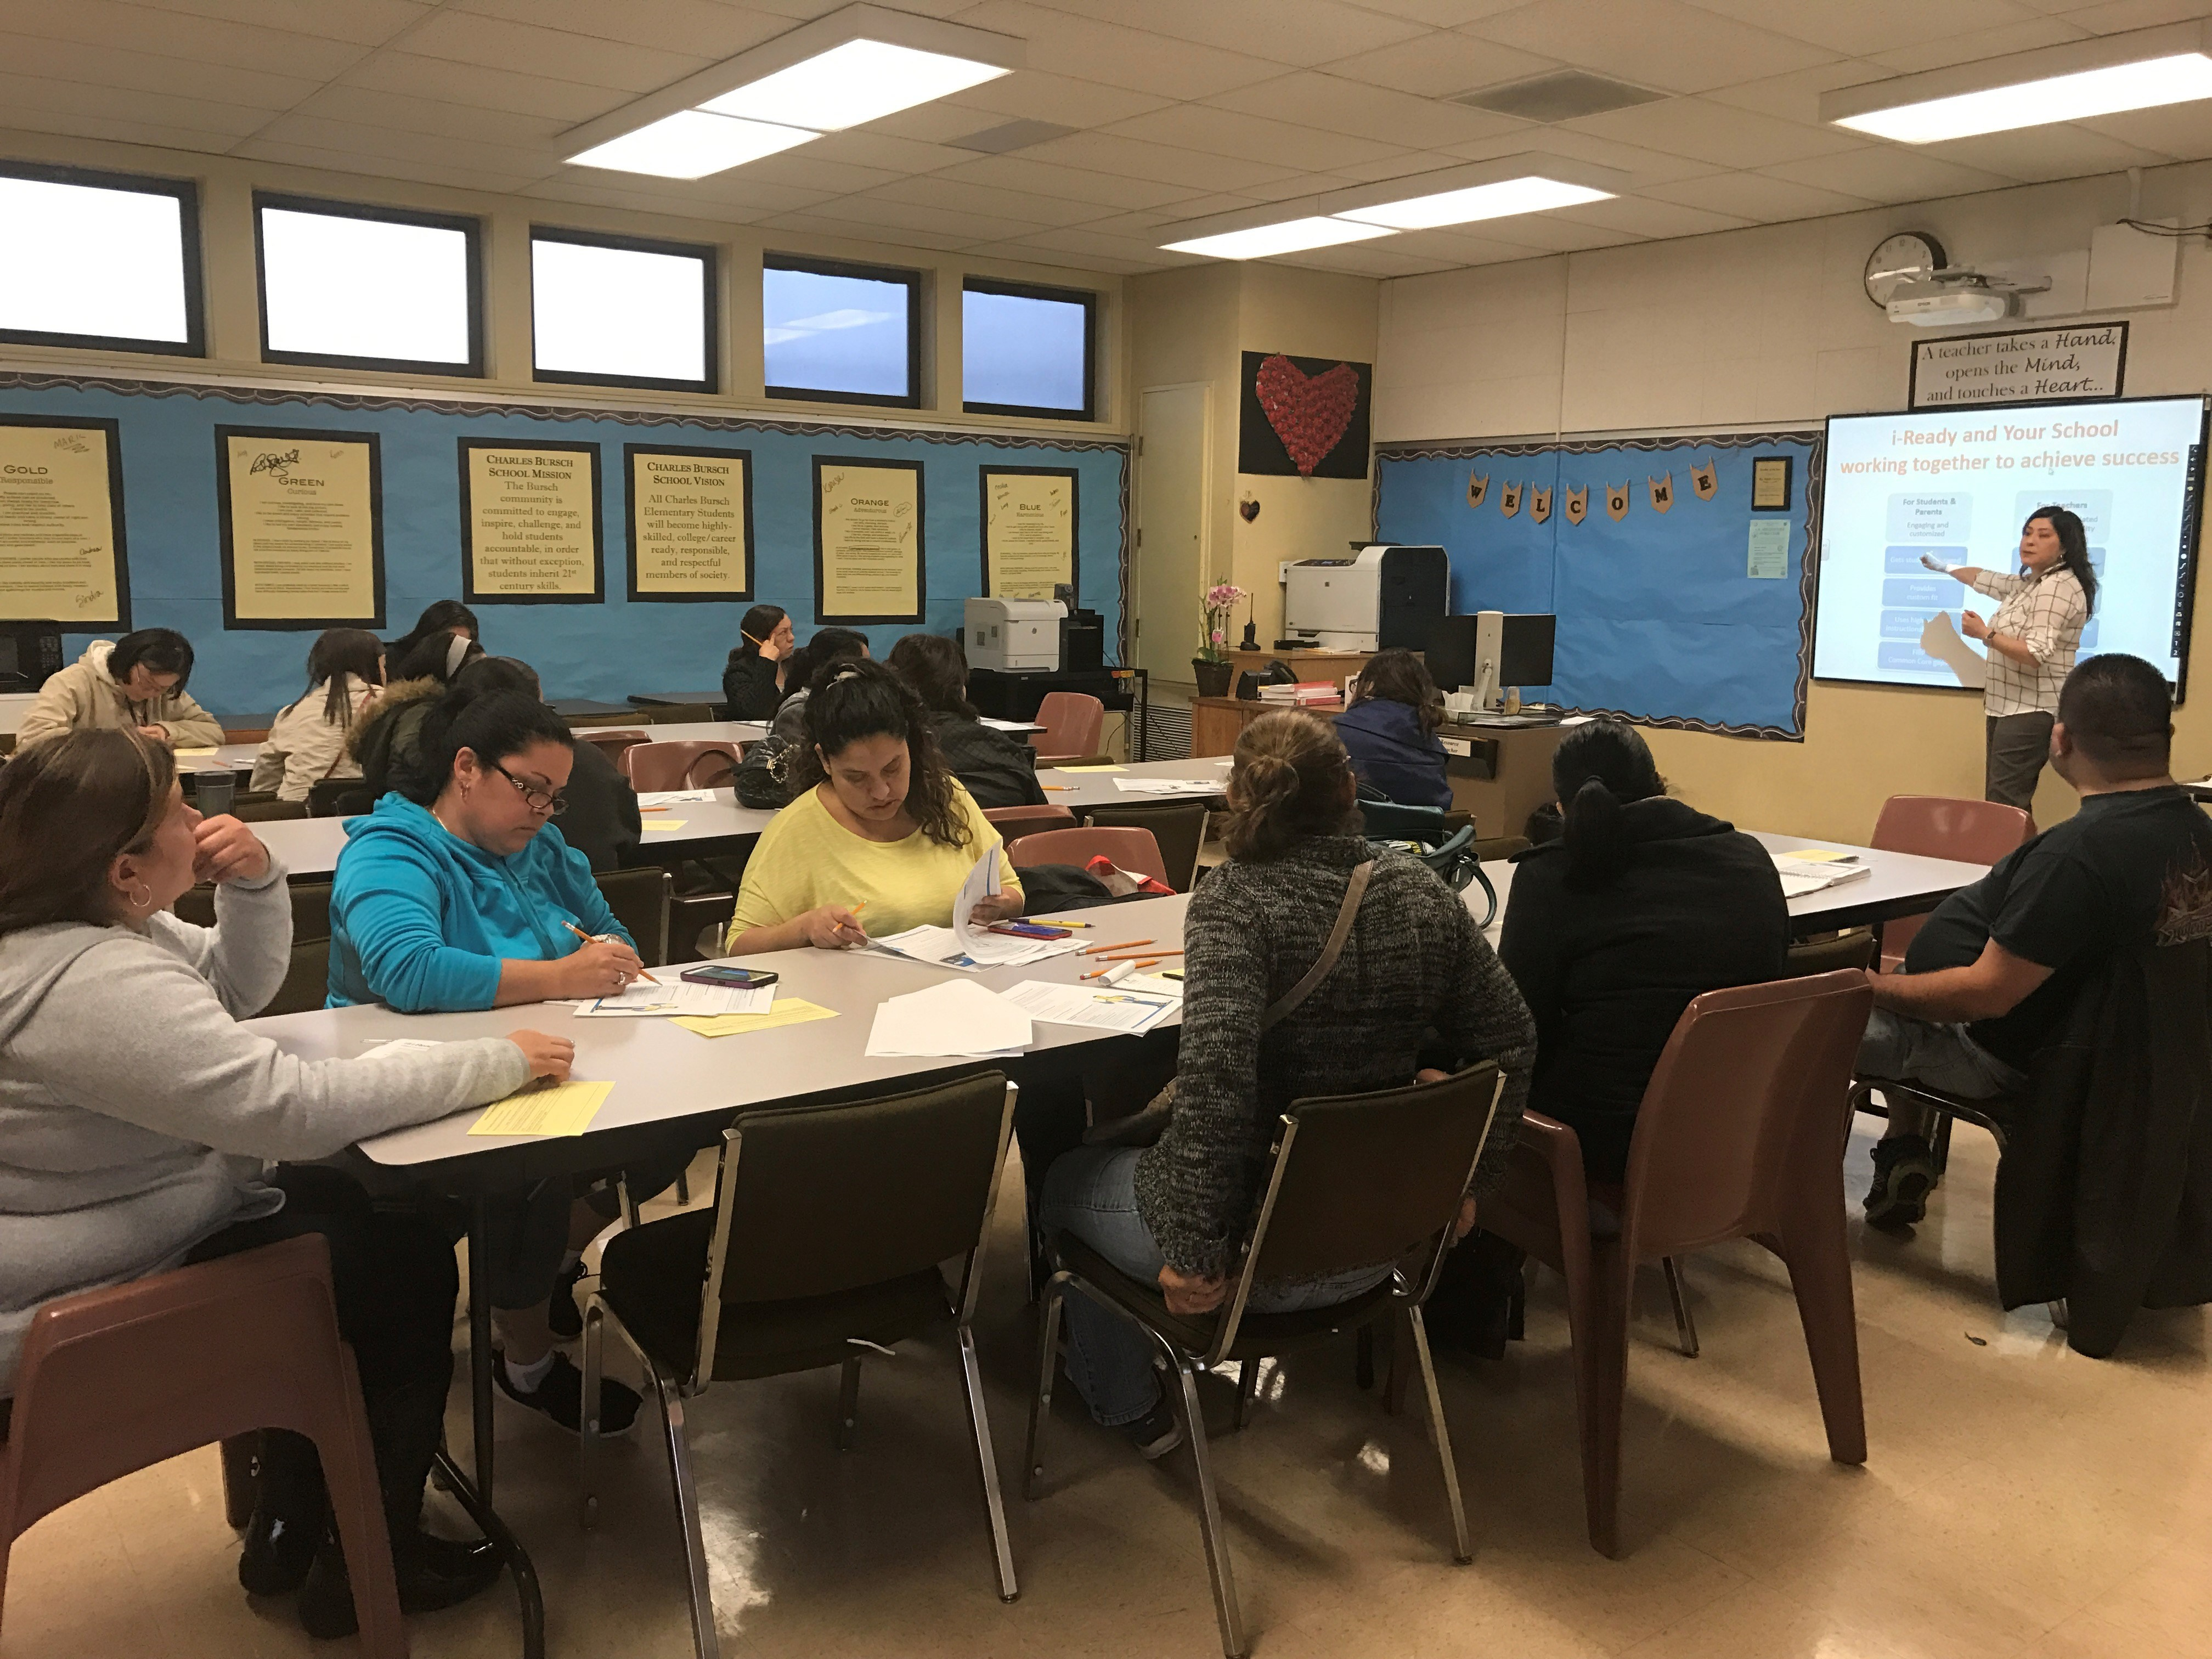 parents learning about iReady